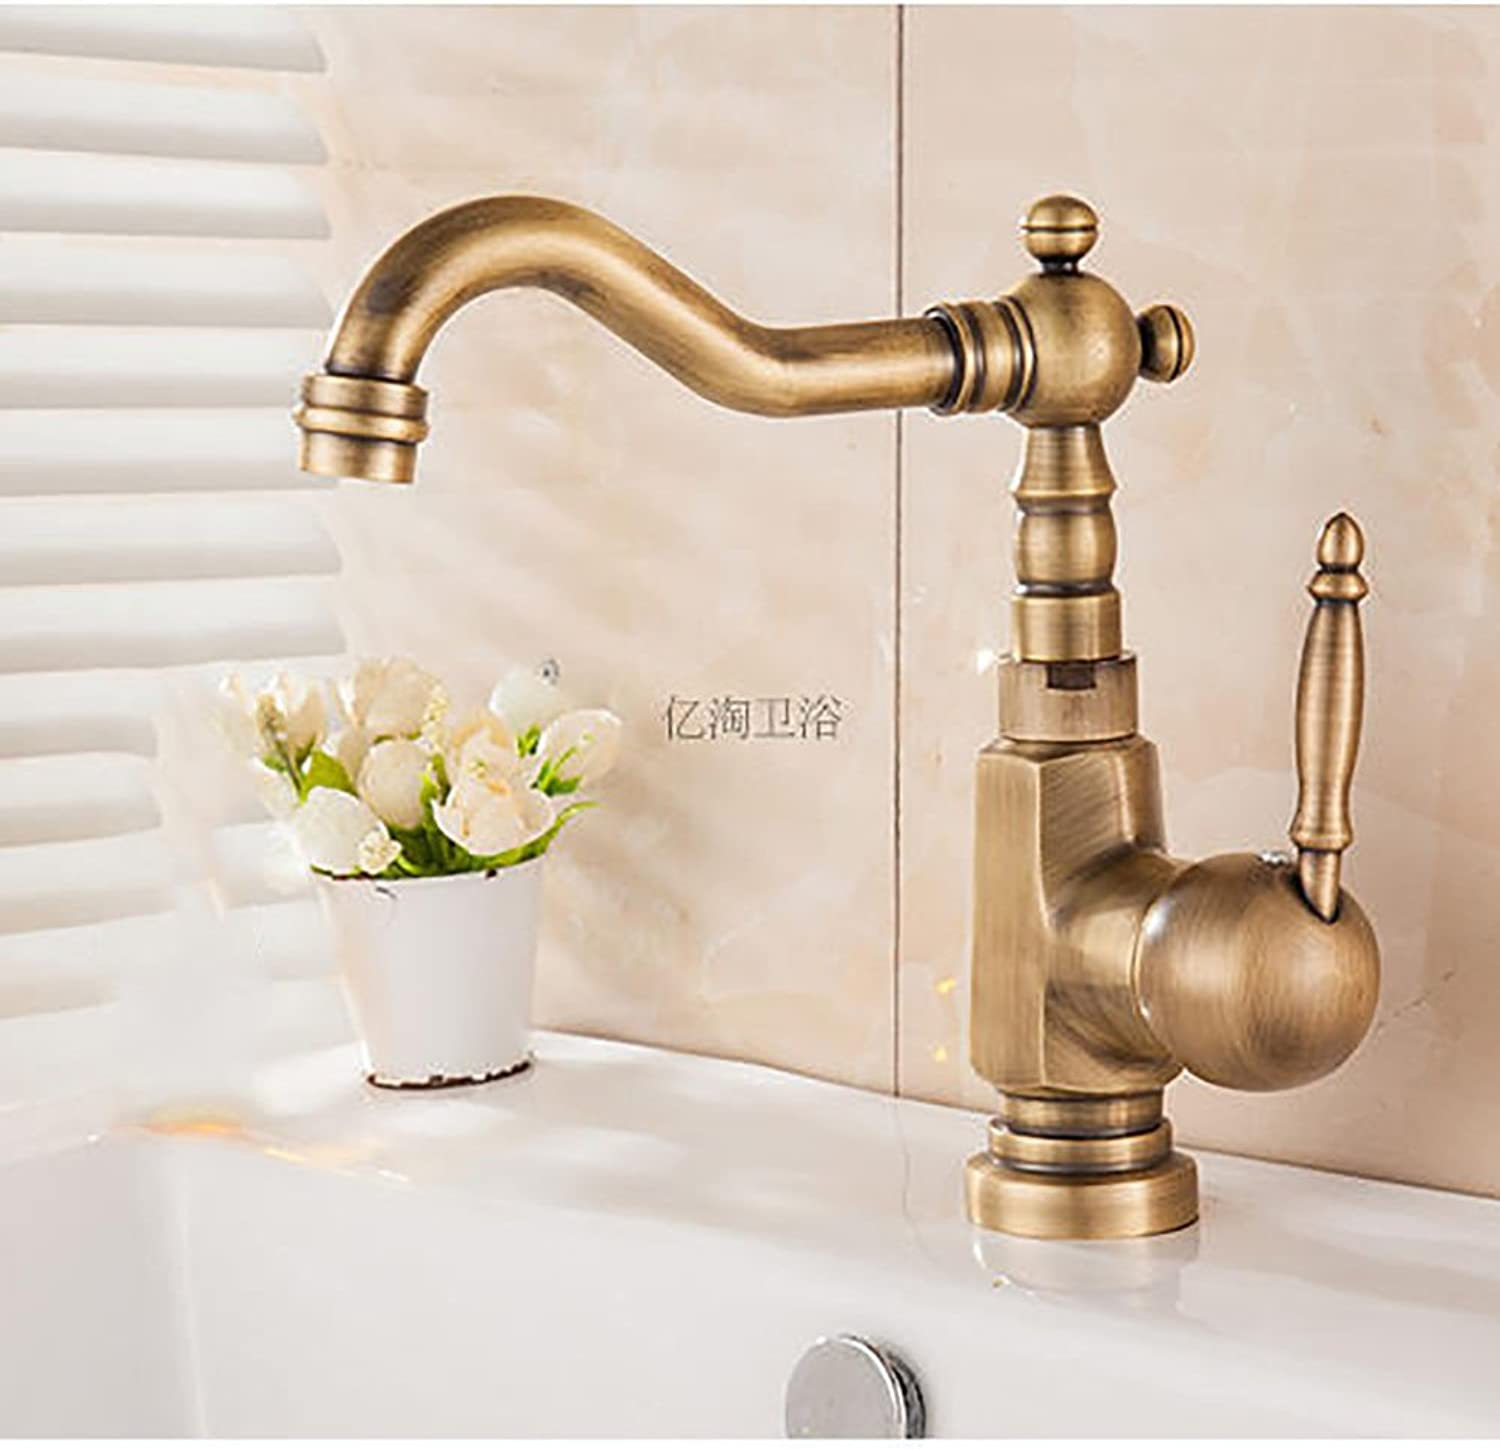 Hlluya Professional Sink Mixer Tap Kitchen Faucet The Antique copper single hole of hot and cold water basin faucet,H